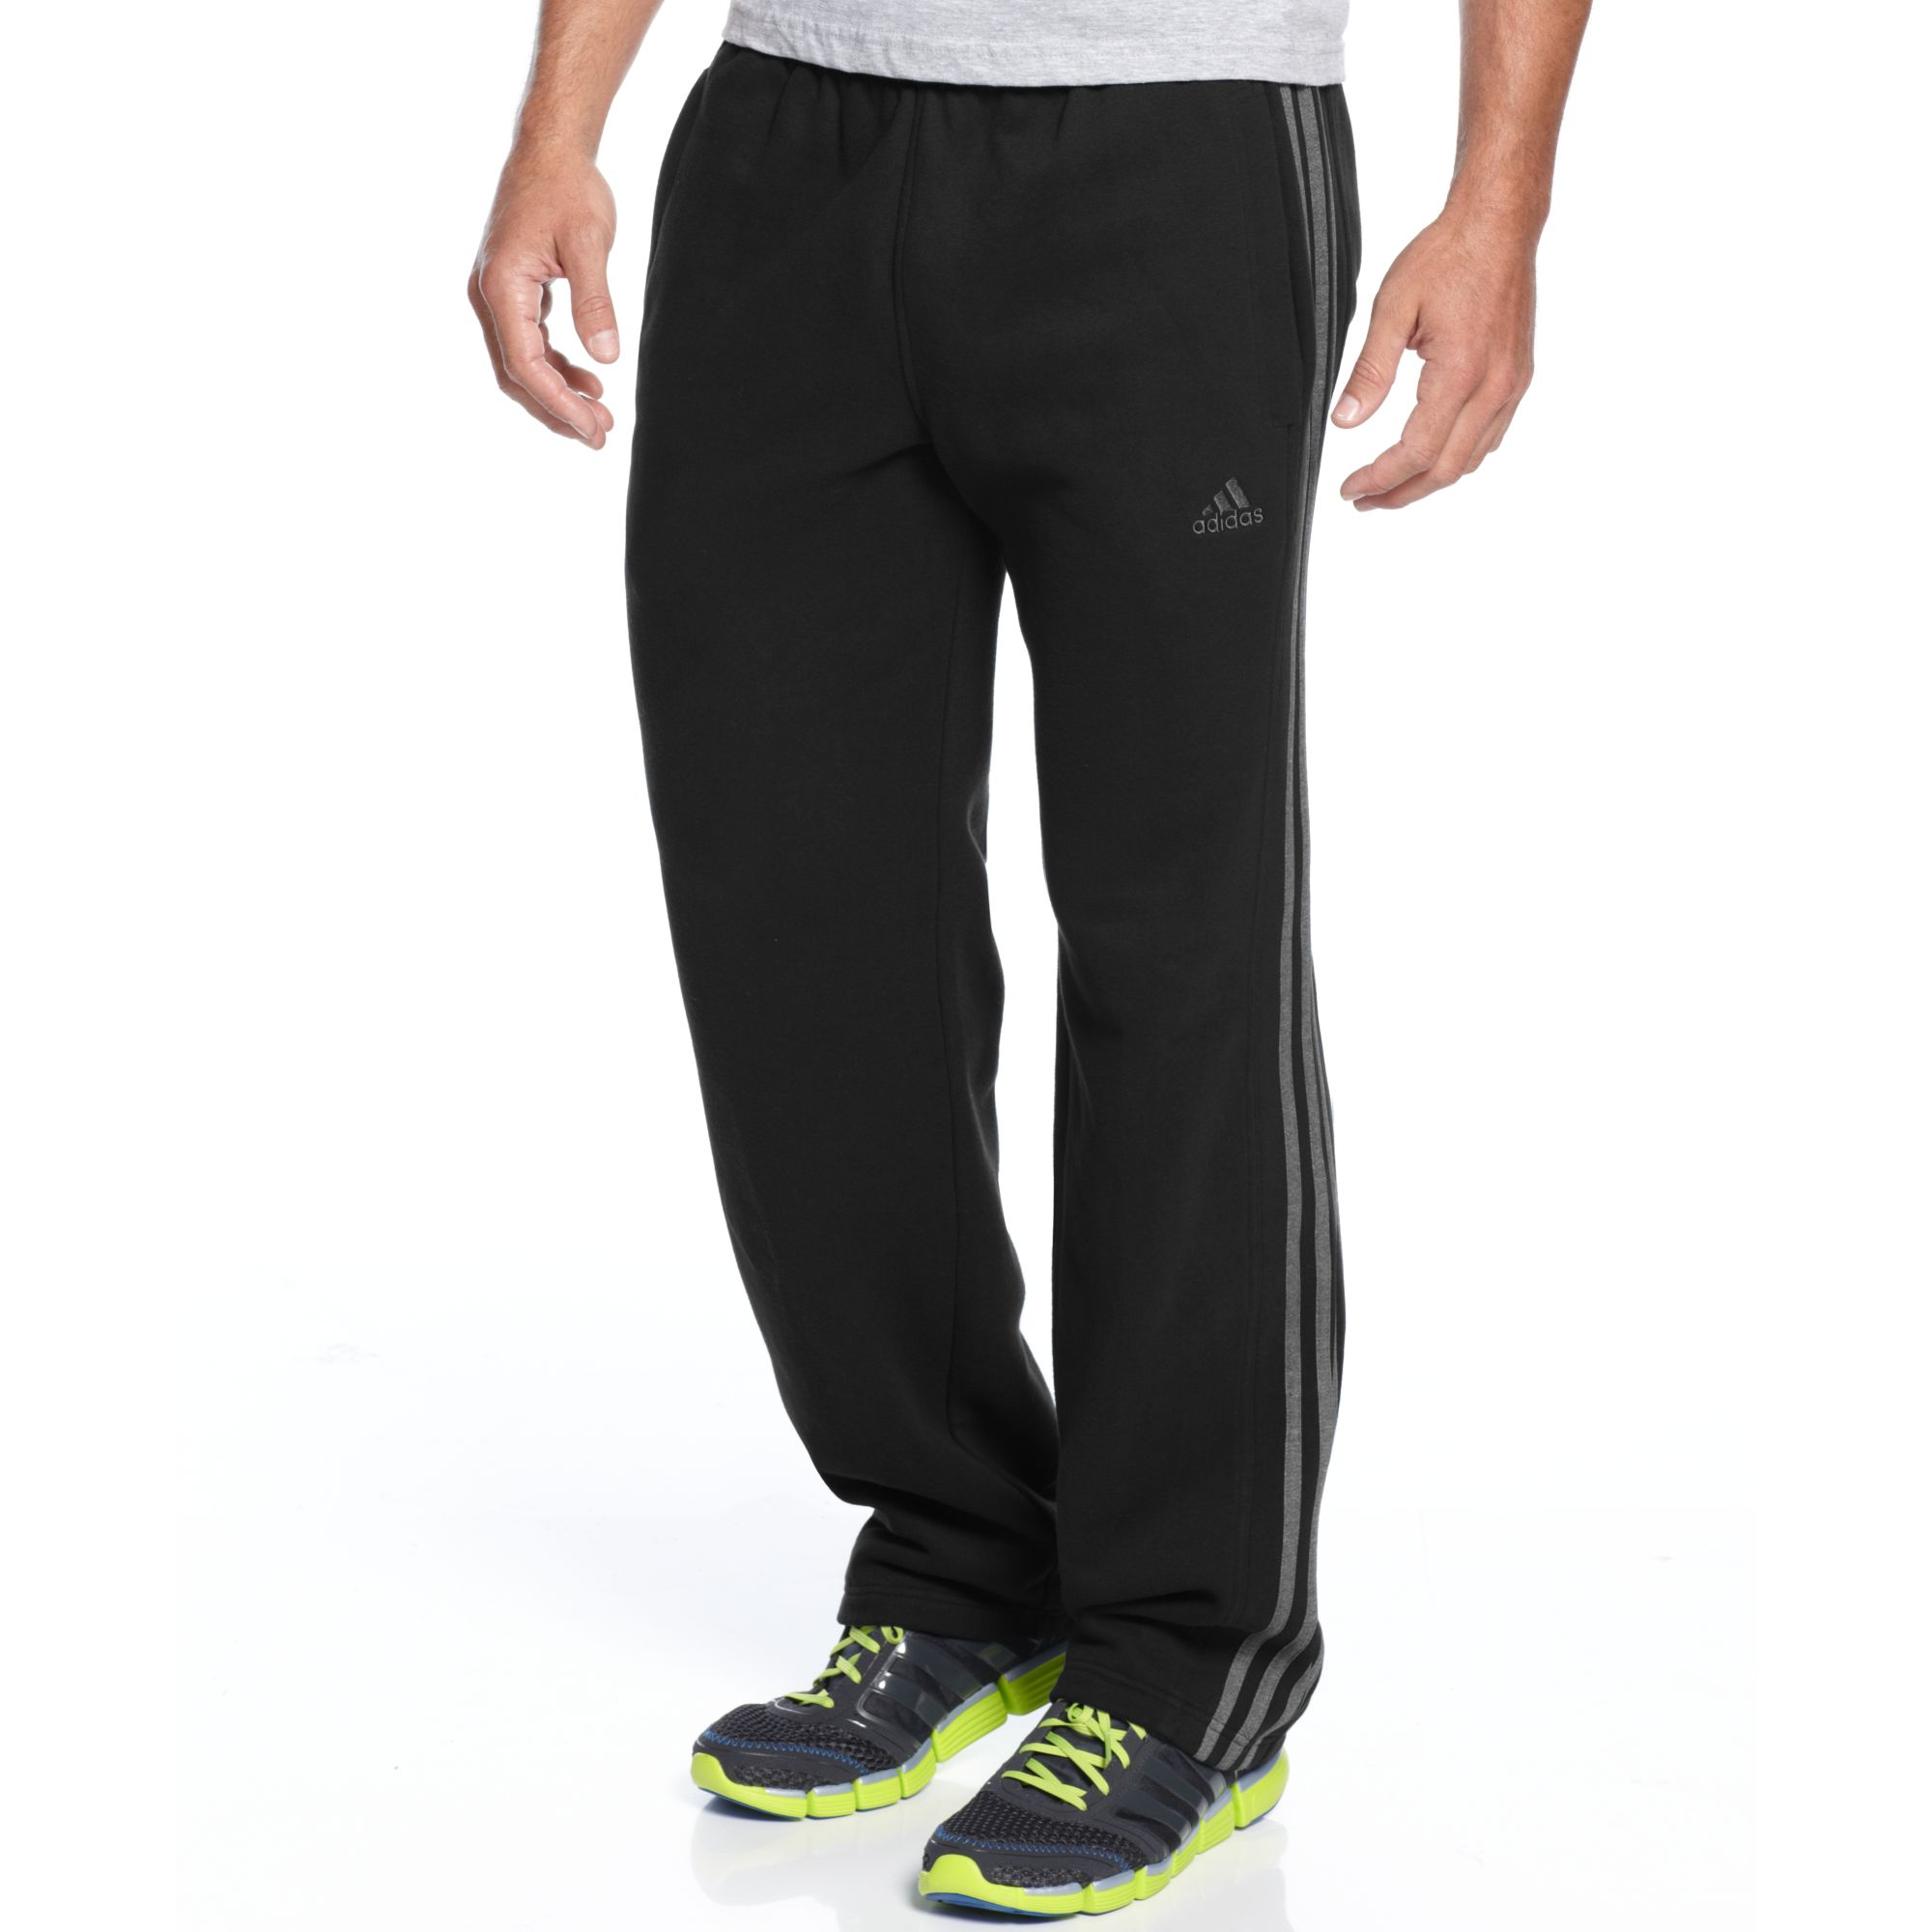 855a63ff7d Lyst - Adidas Go Route Pants in Black for Men